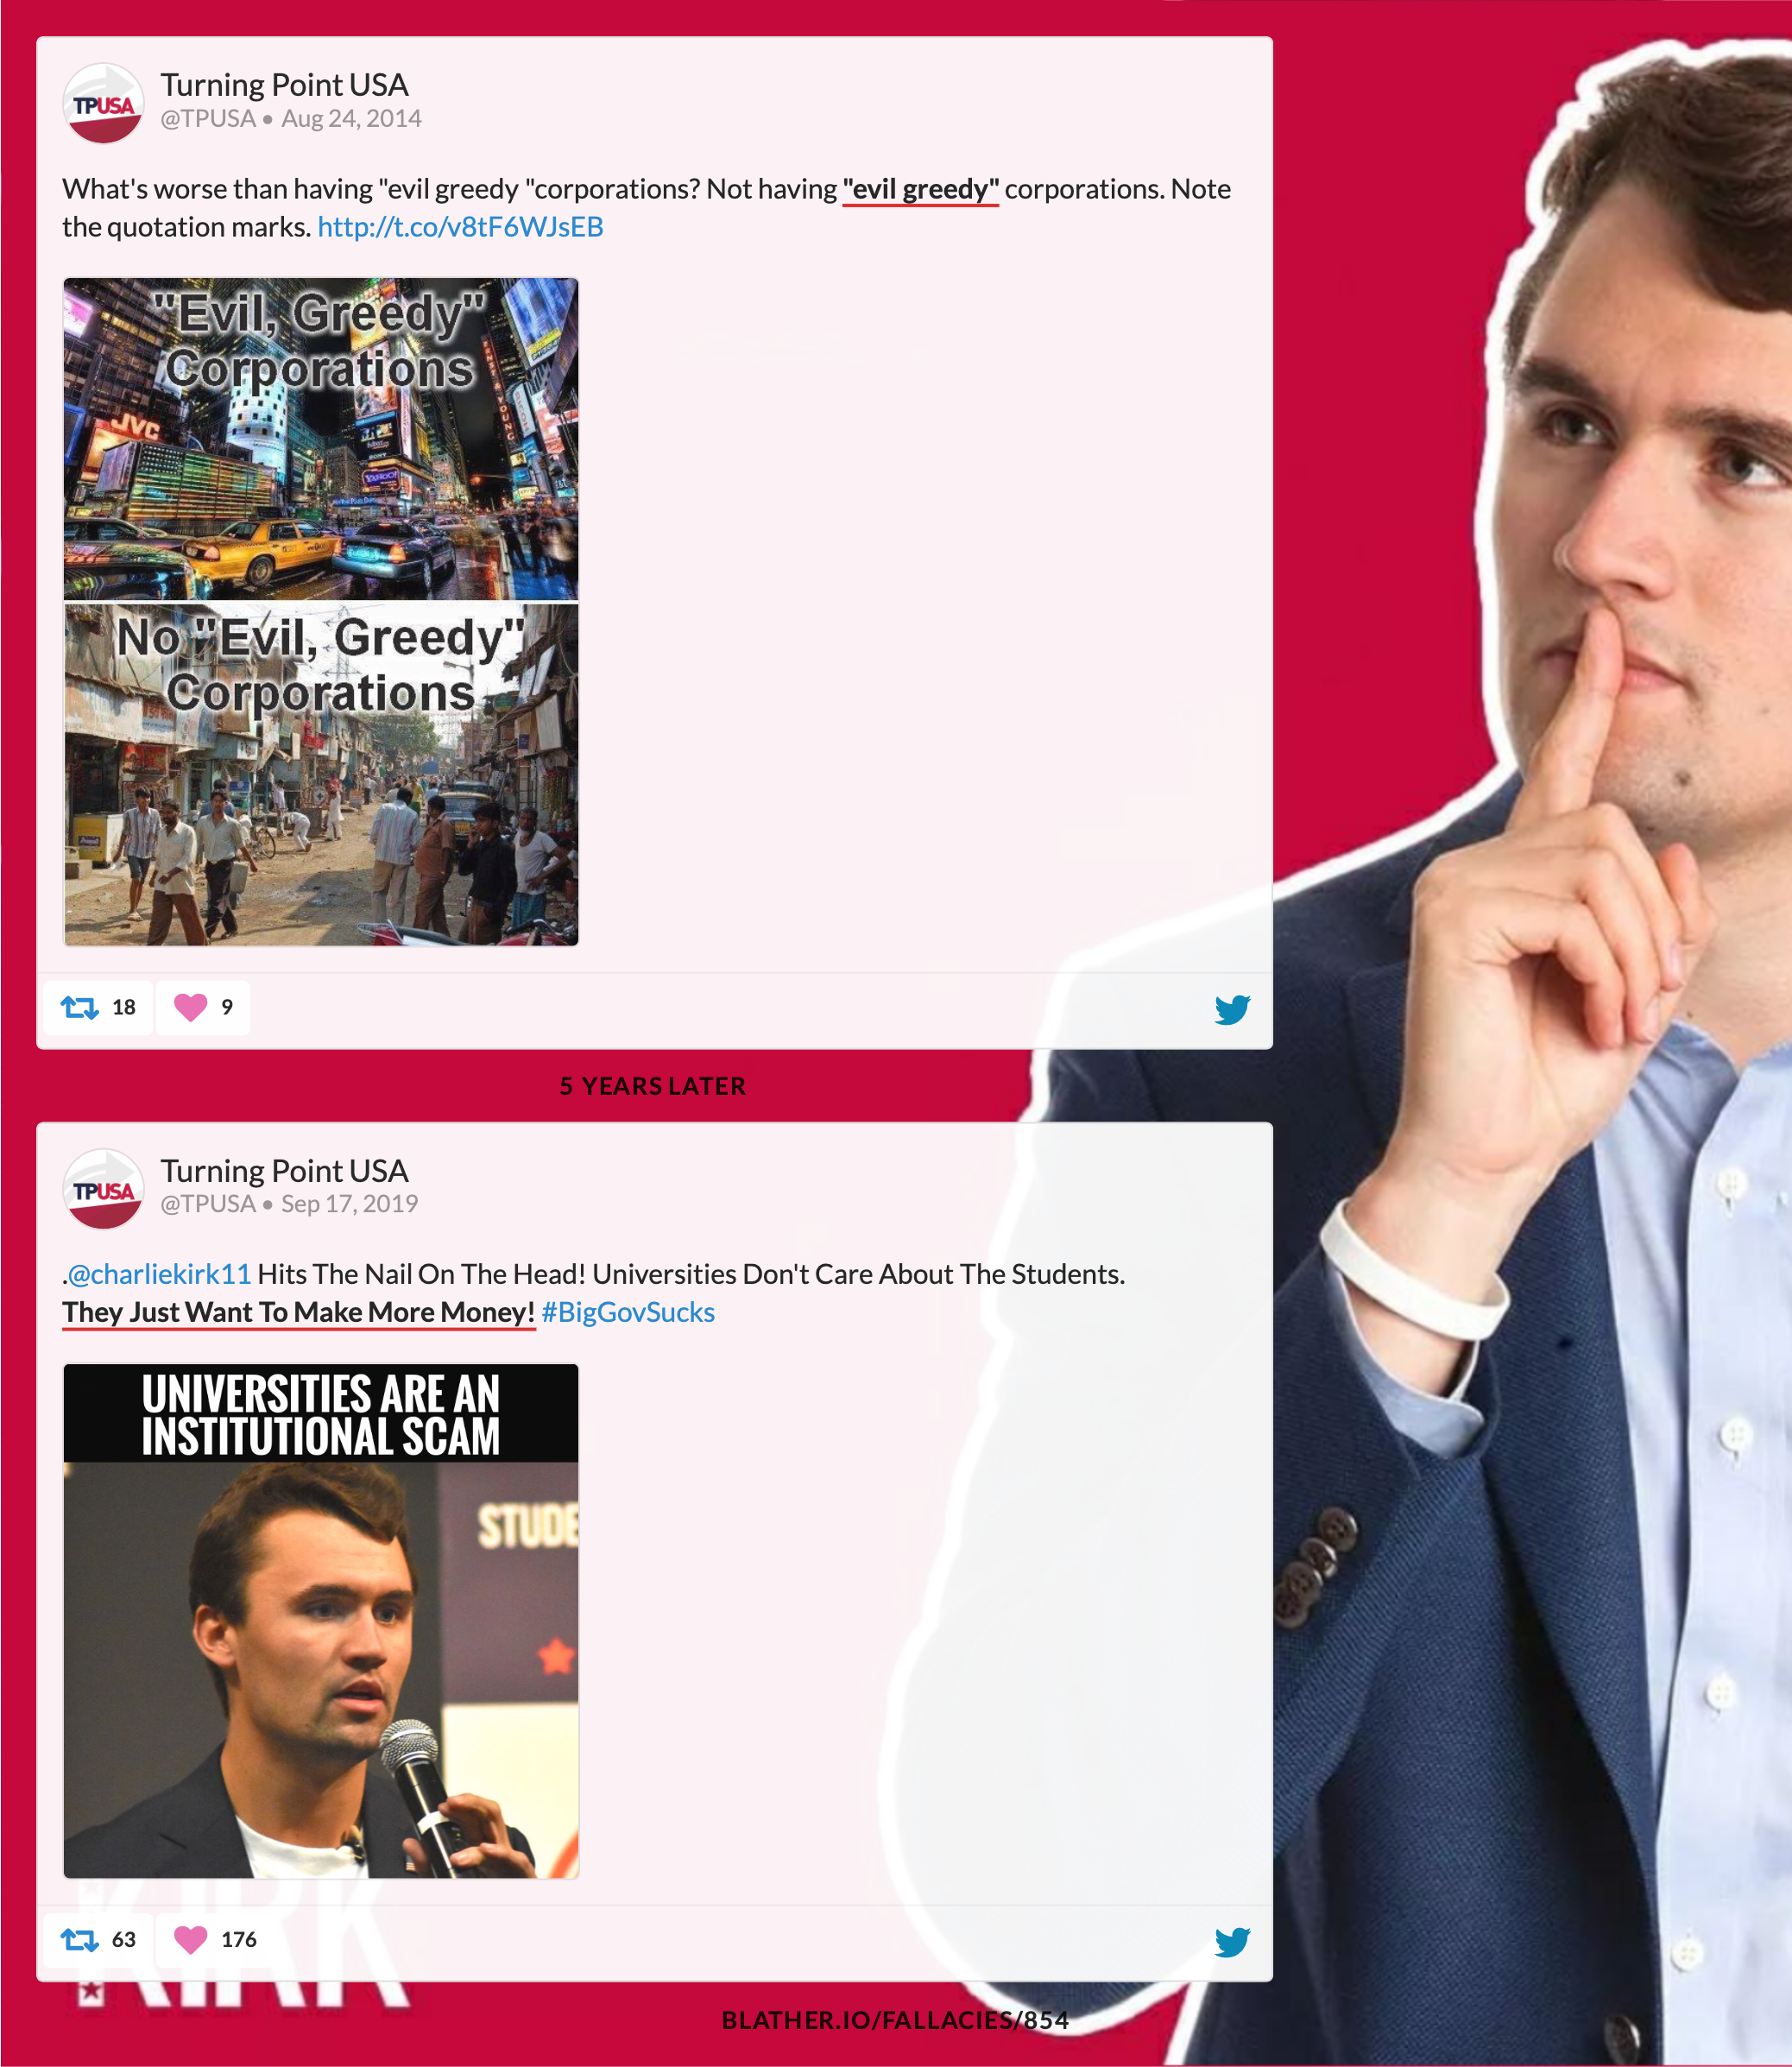 Charlie Kirk can't decide if greed is good - Blather